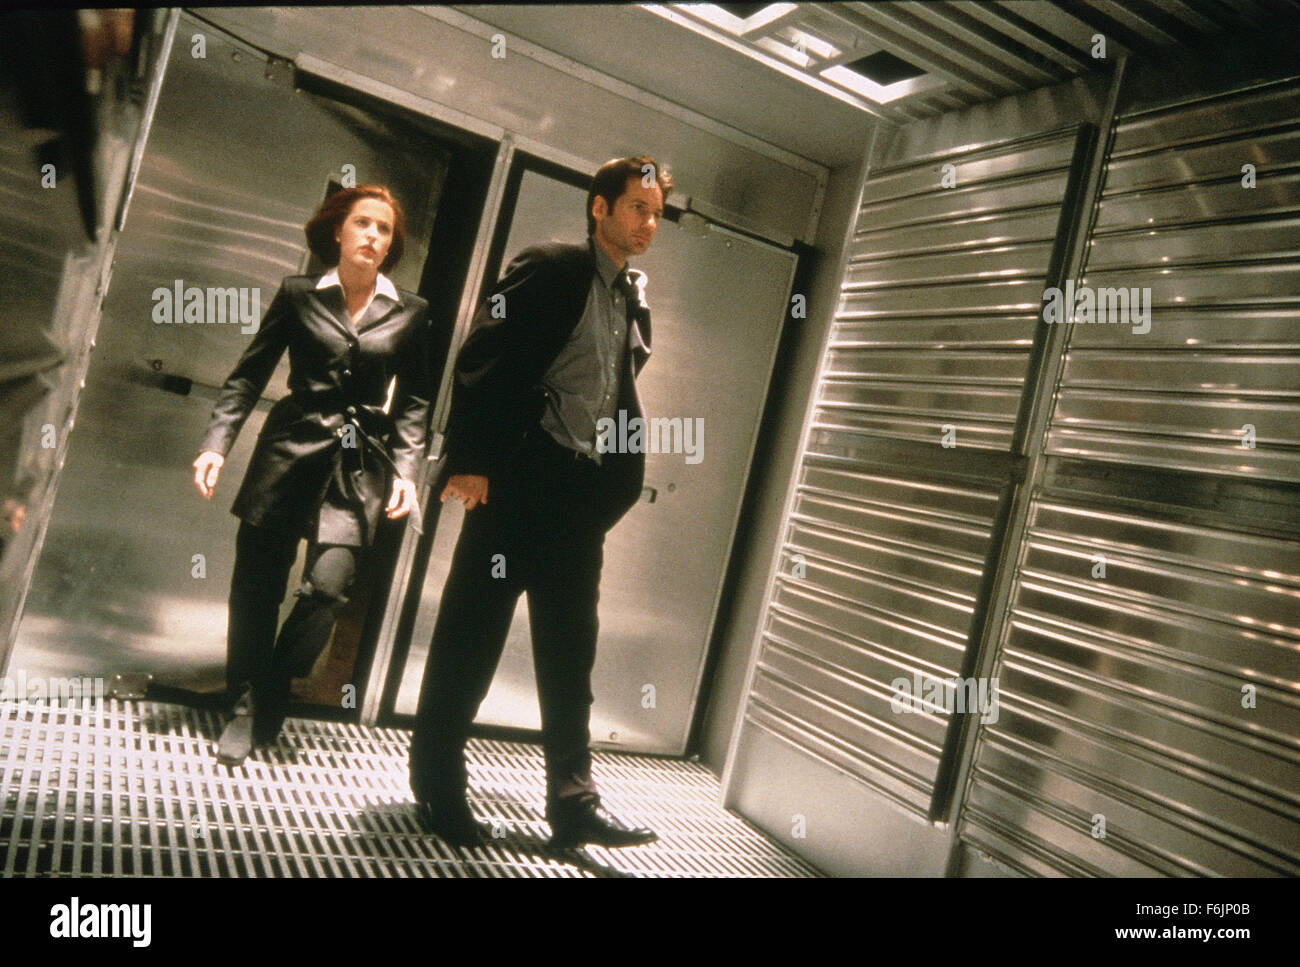 RELEASE DATE: June 19, 1998. MOVIE TITLE: The X-Files: Fight the Future. STUDIO: 20th Century Fox. PLOT: With problems - Stock Image